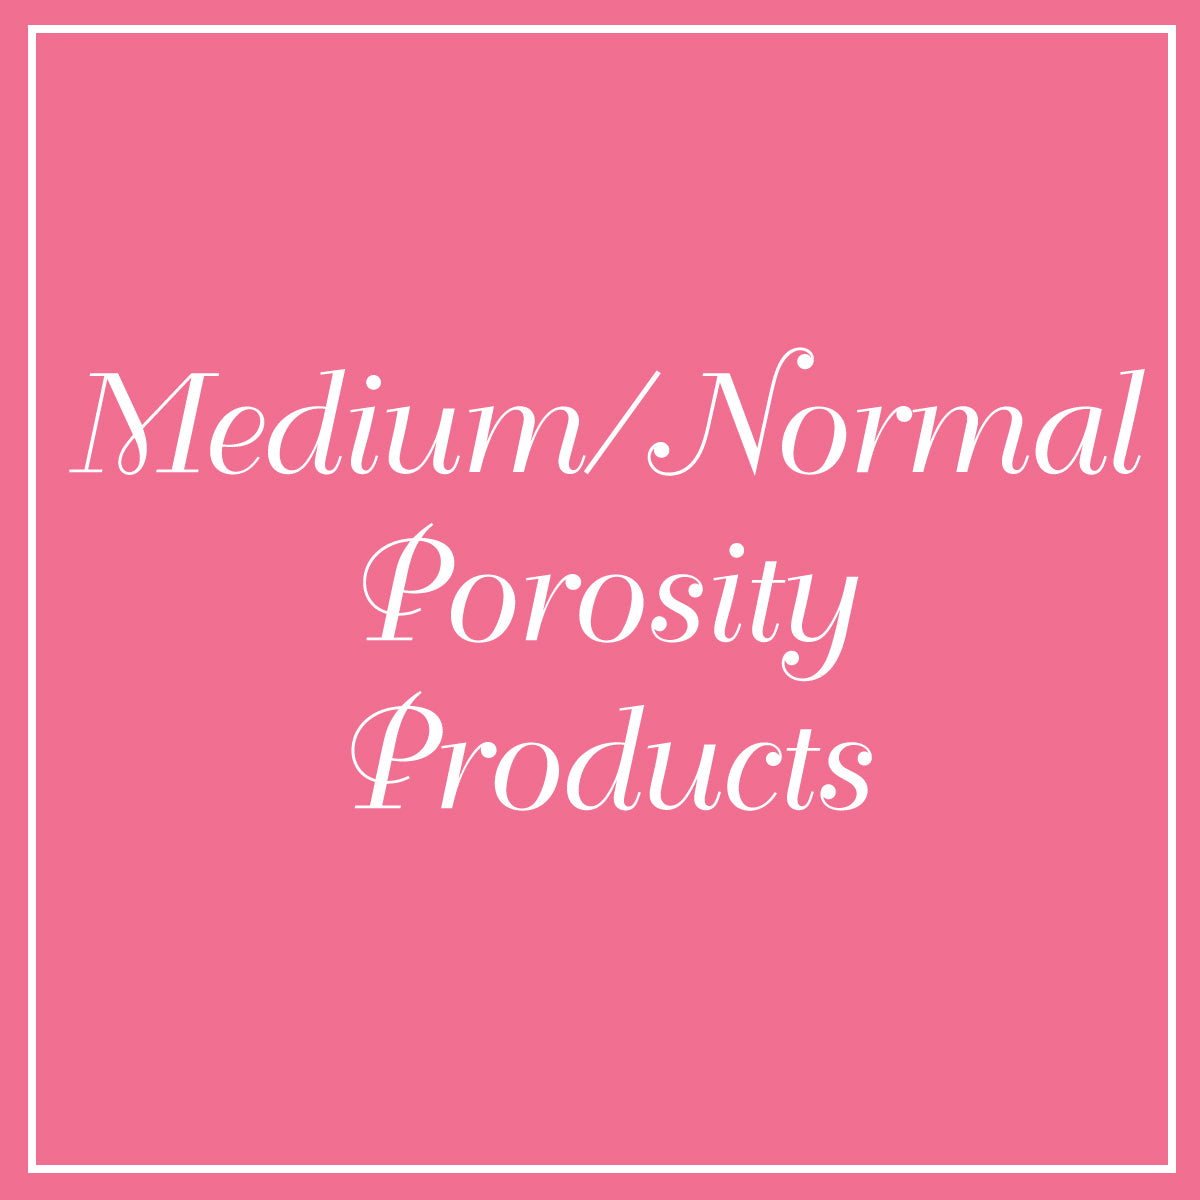 Products for Normal/Medium Porosity Hair